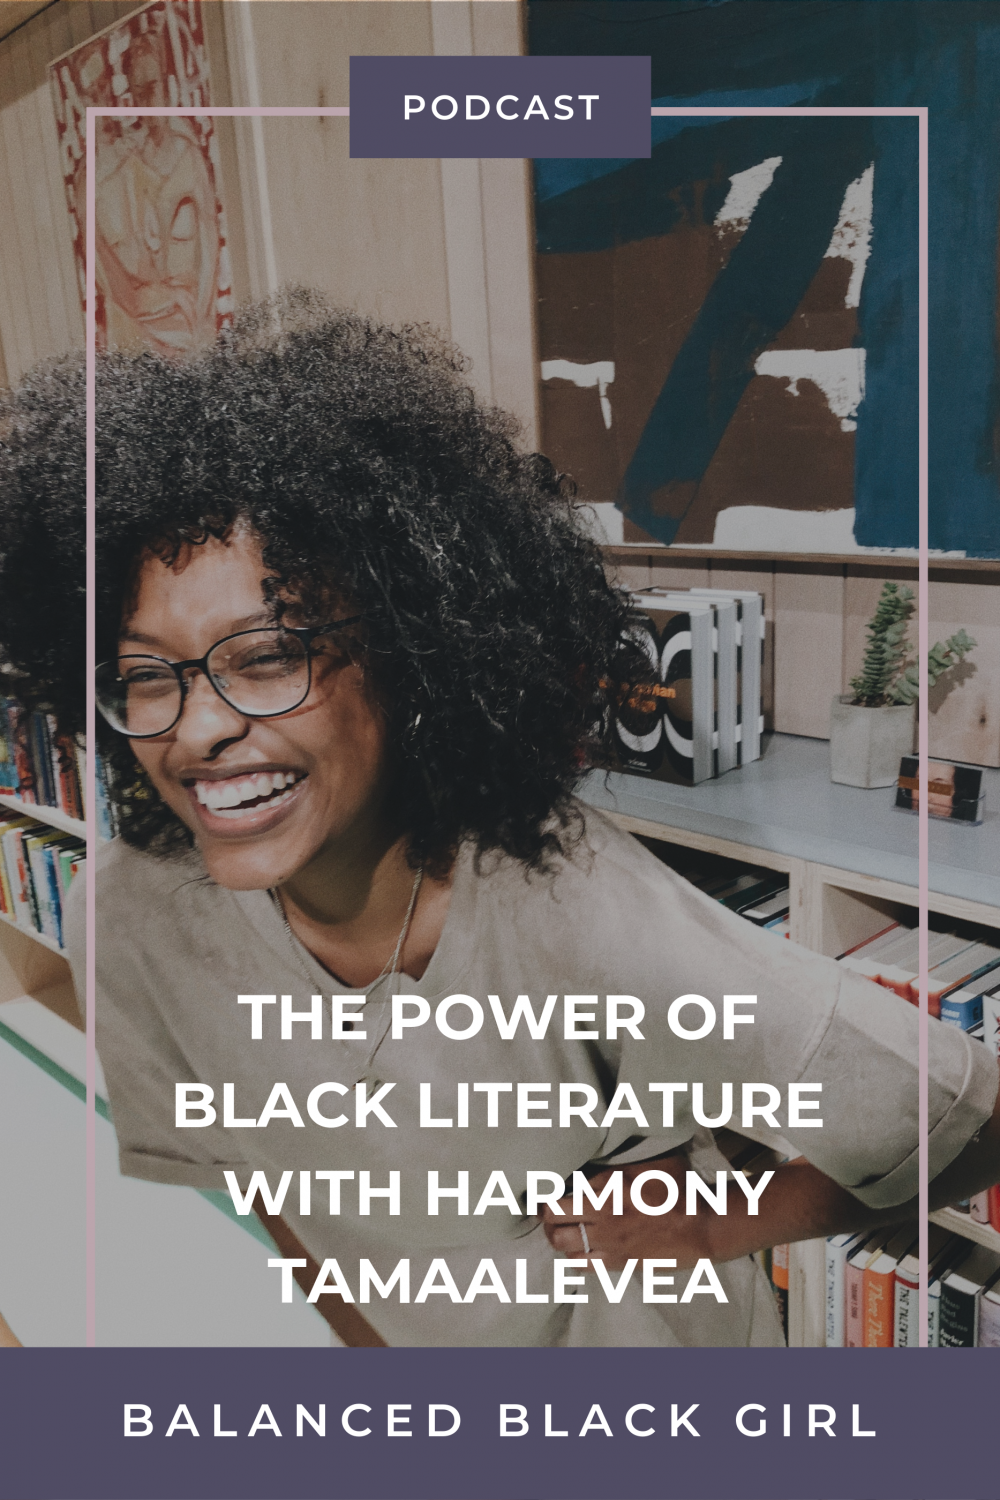 Episode 33: The Power of Black Literature with Harmony Tamaalevea of The Literacy Lounge